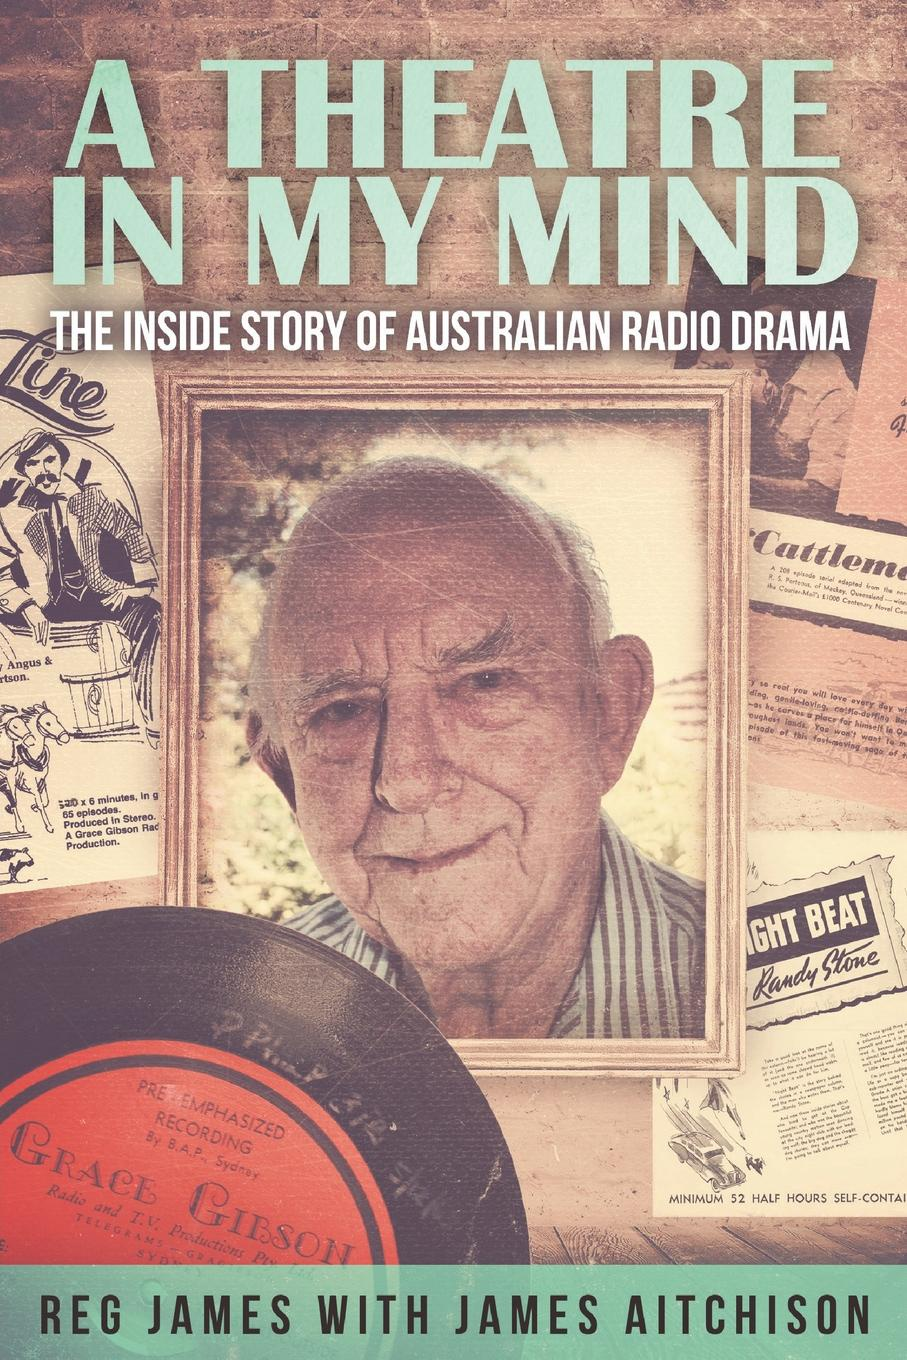 James Aitchison, Reg James A Theatre in my Mind - the inside story of Australian radio drama the australian voices гордон гамильтон the australian voices